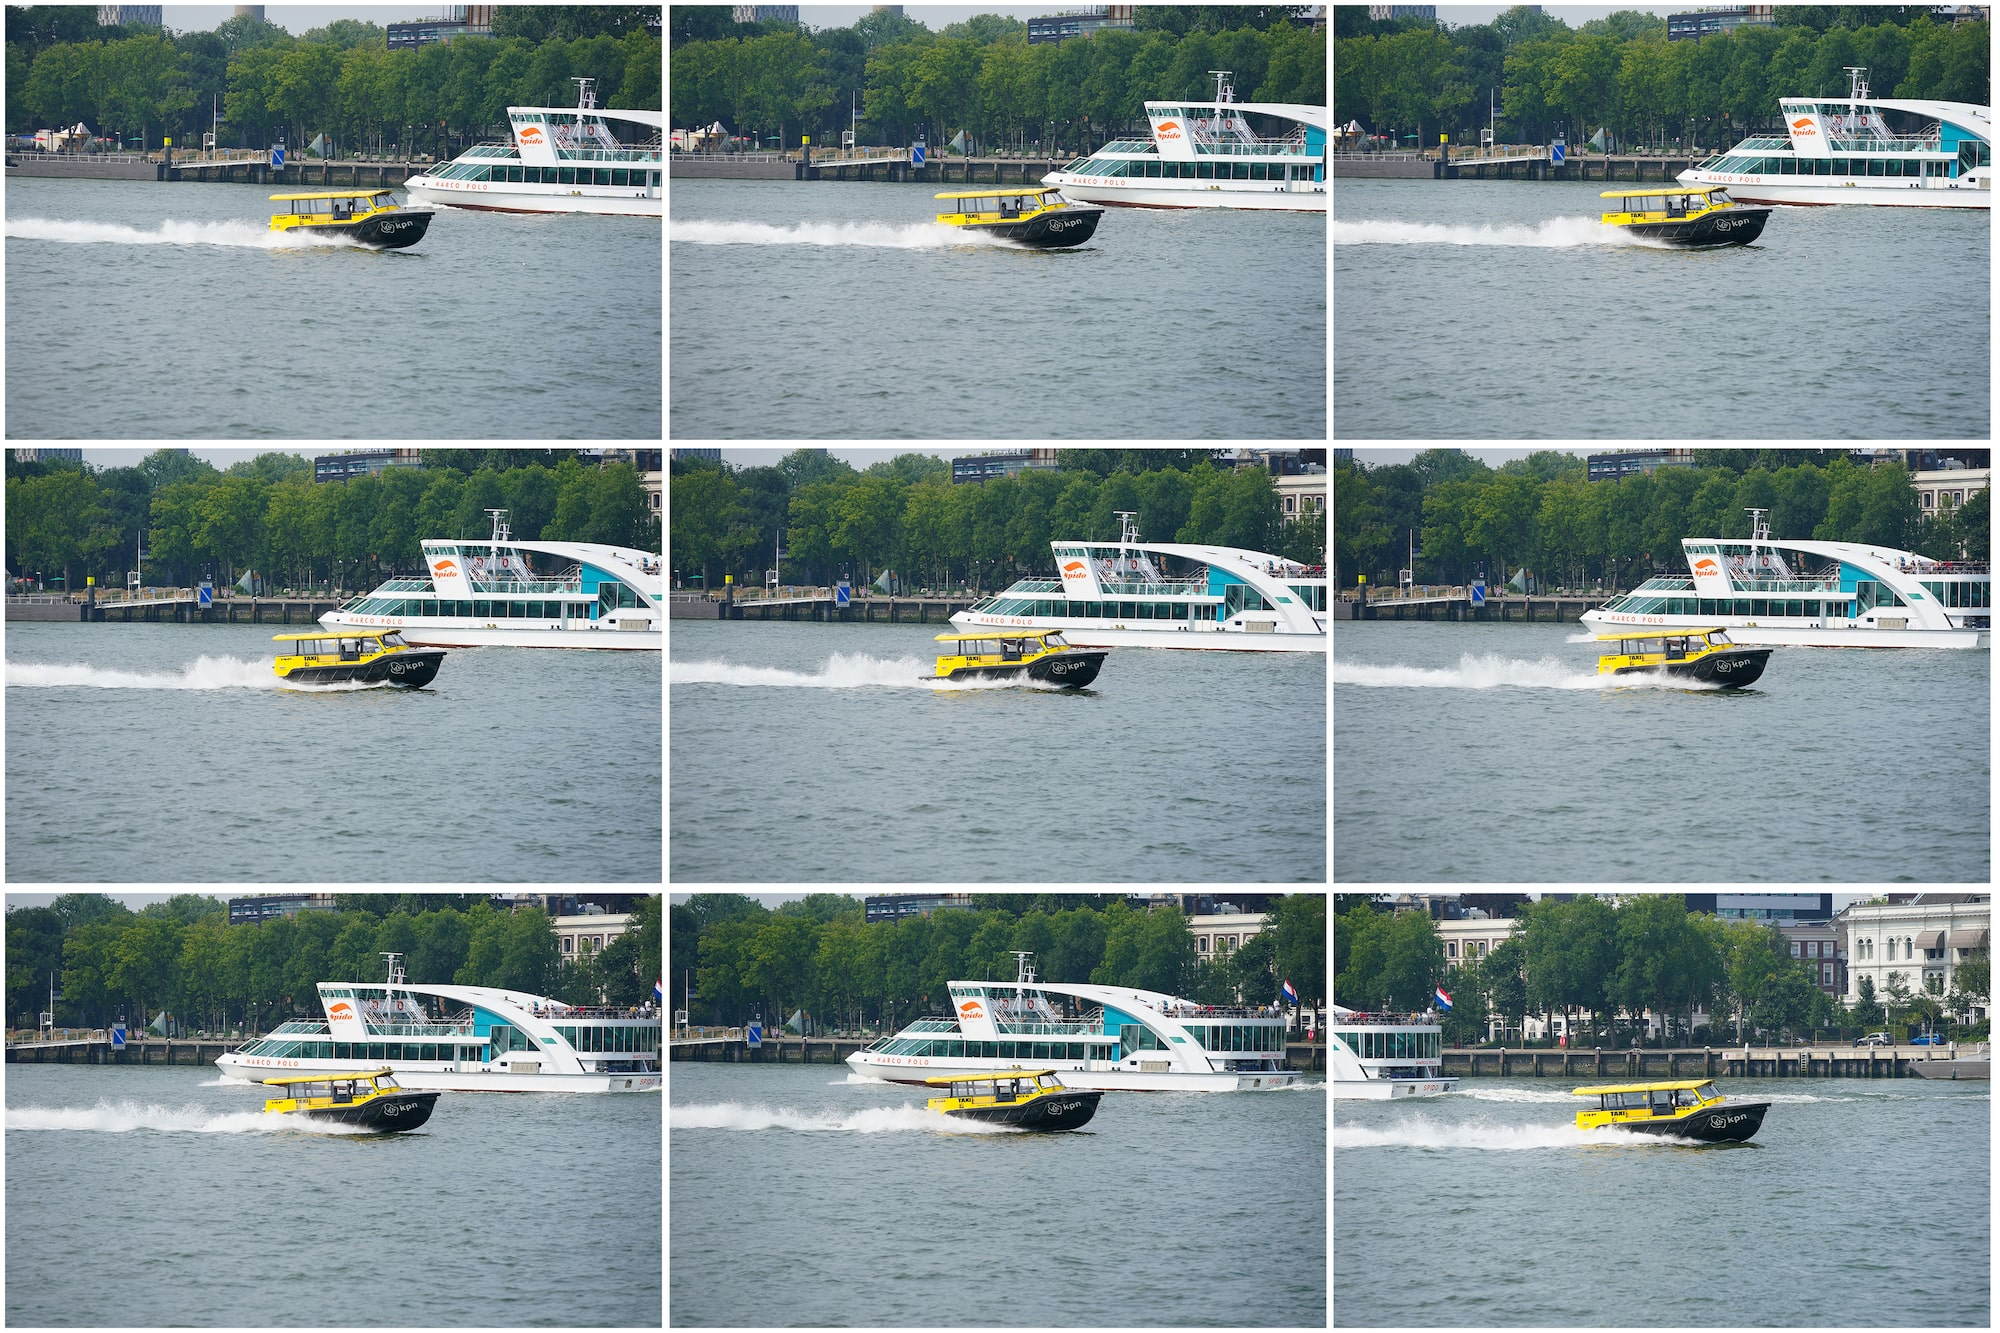 gustav kiburg sony alpha 9M2 sequence of speedboat images at high speed